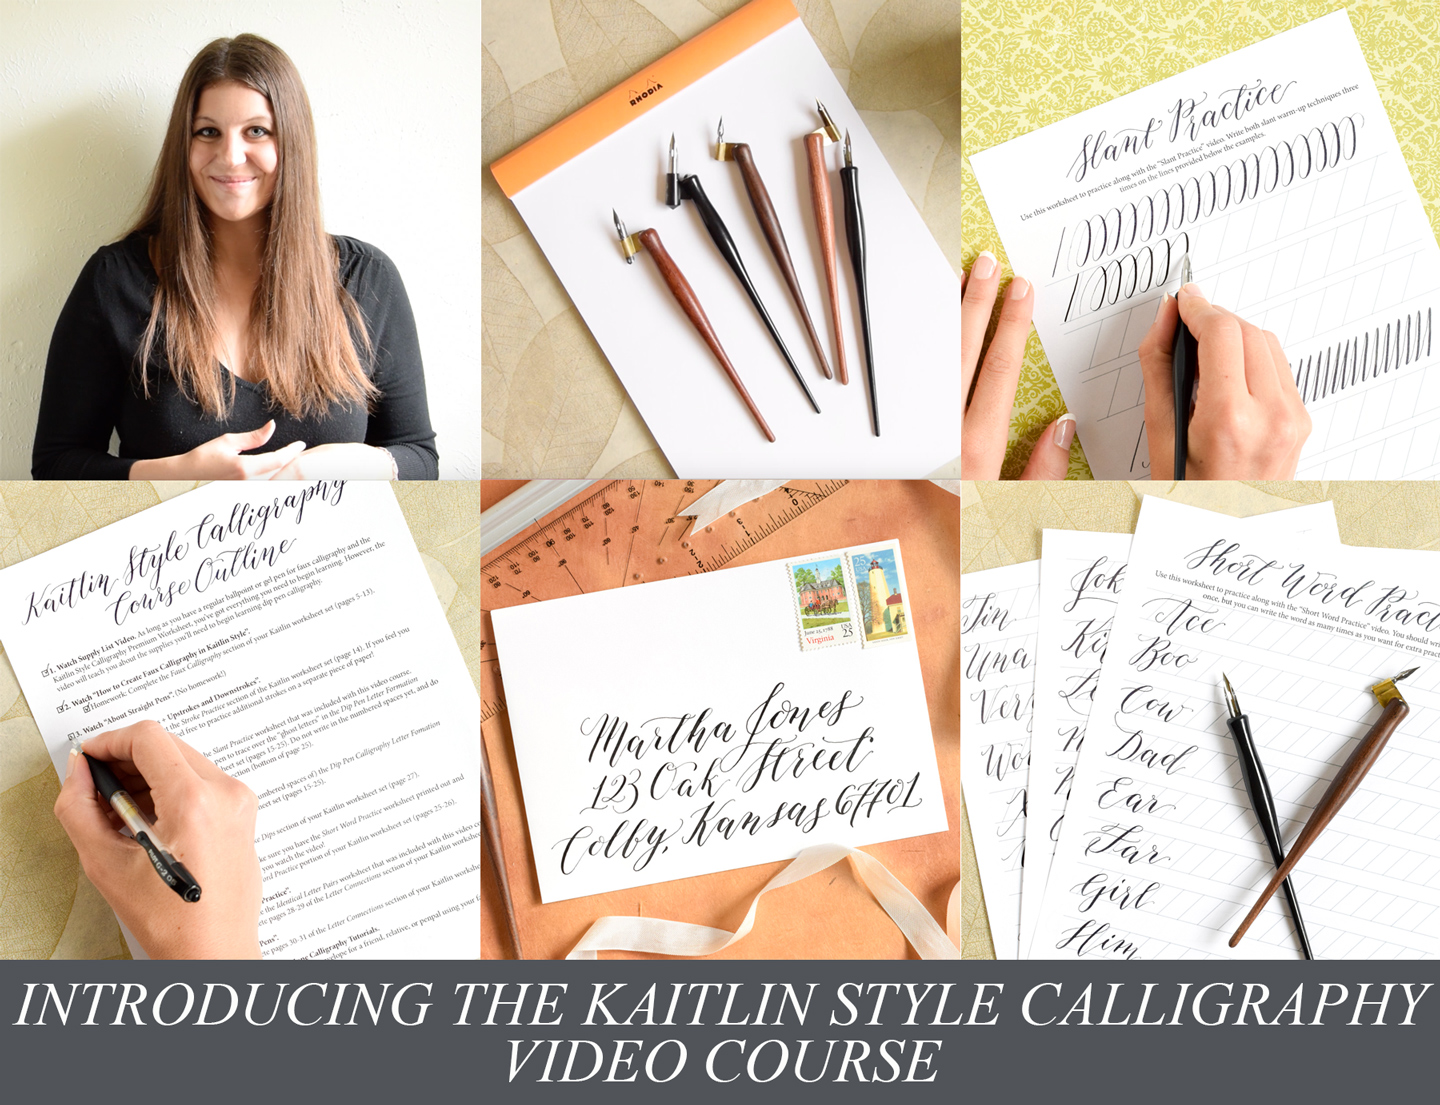 Introducing The Kaitlin Style Calligraphy Video Course